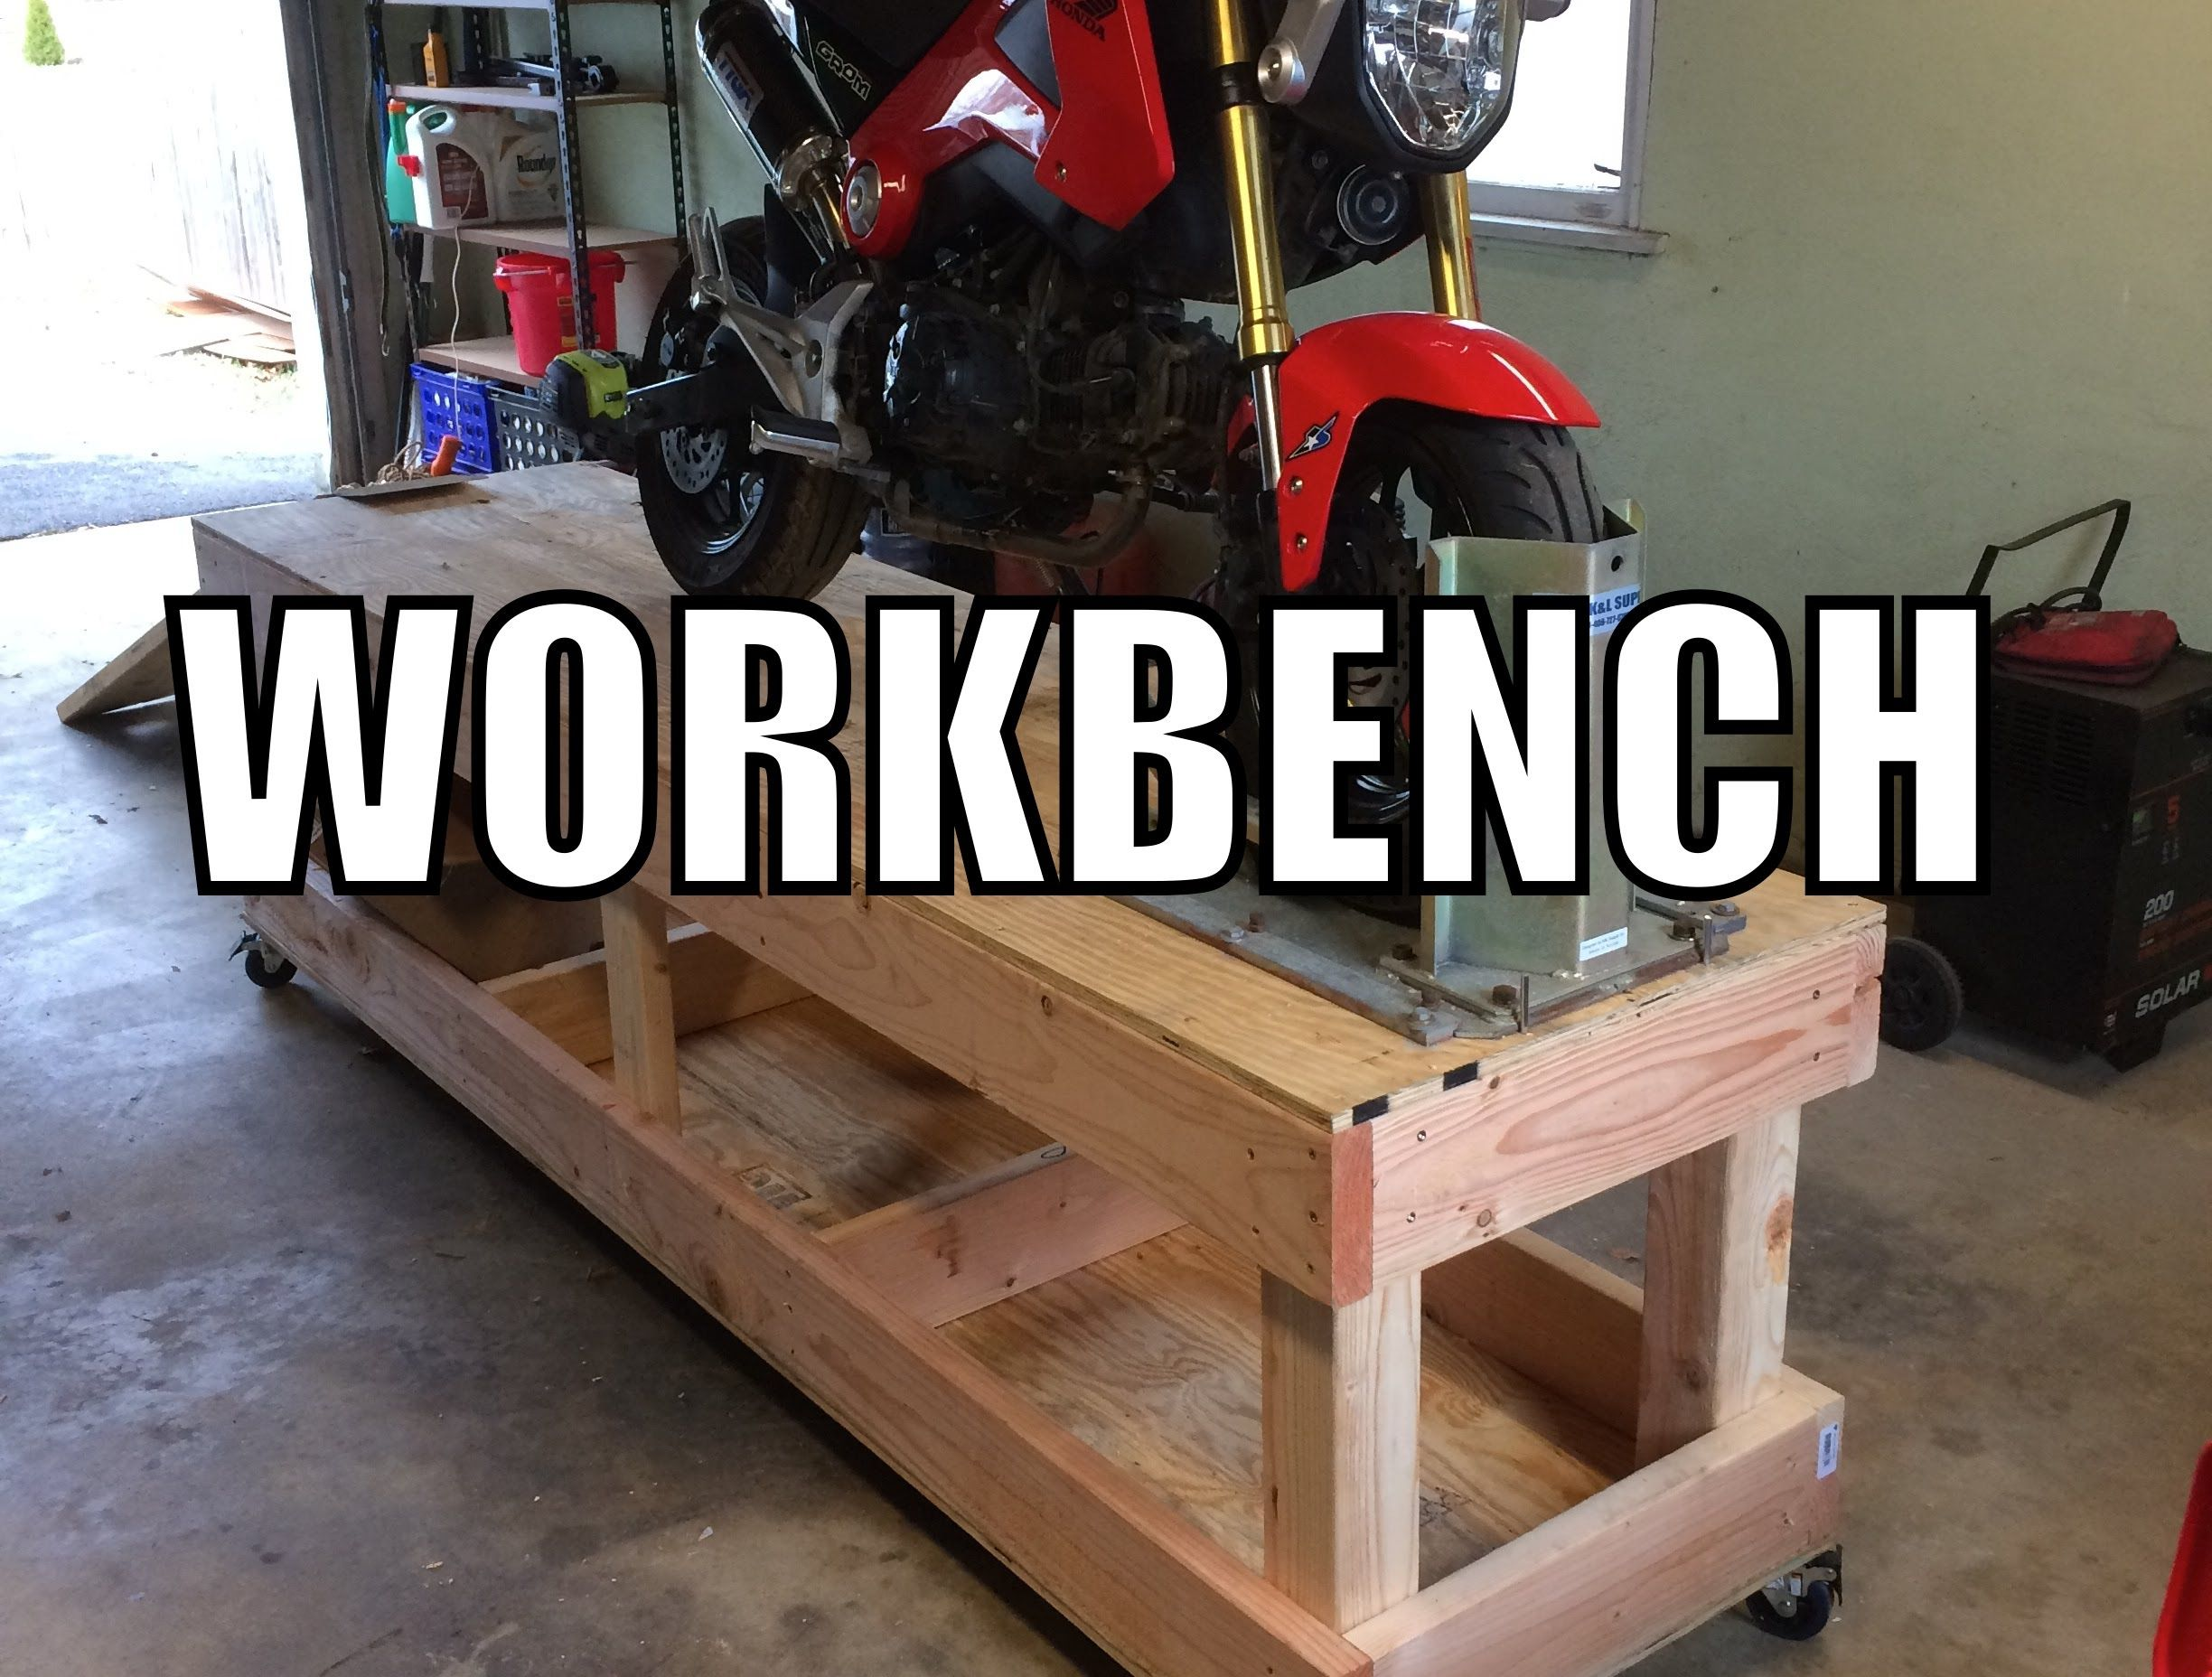 How To Build A Motorcycle Workbench Bike Stand Diy Motorcycle Lift Table Workbench